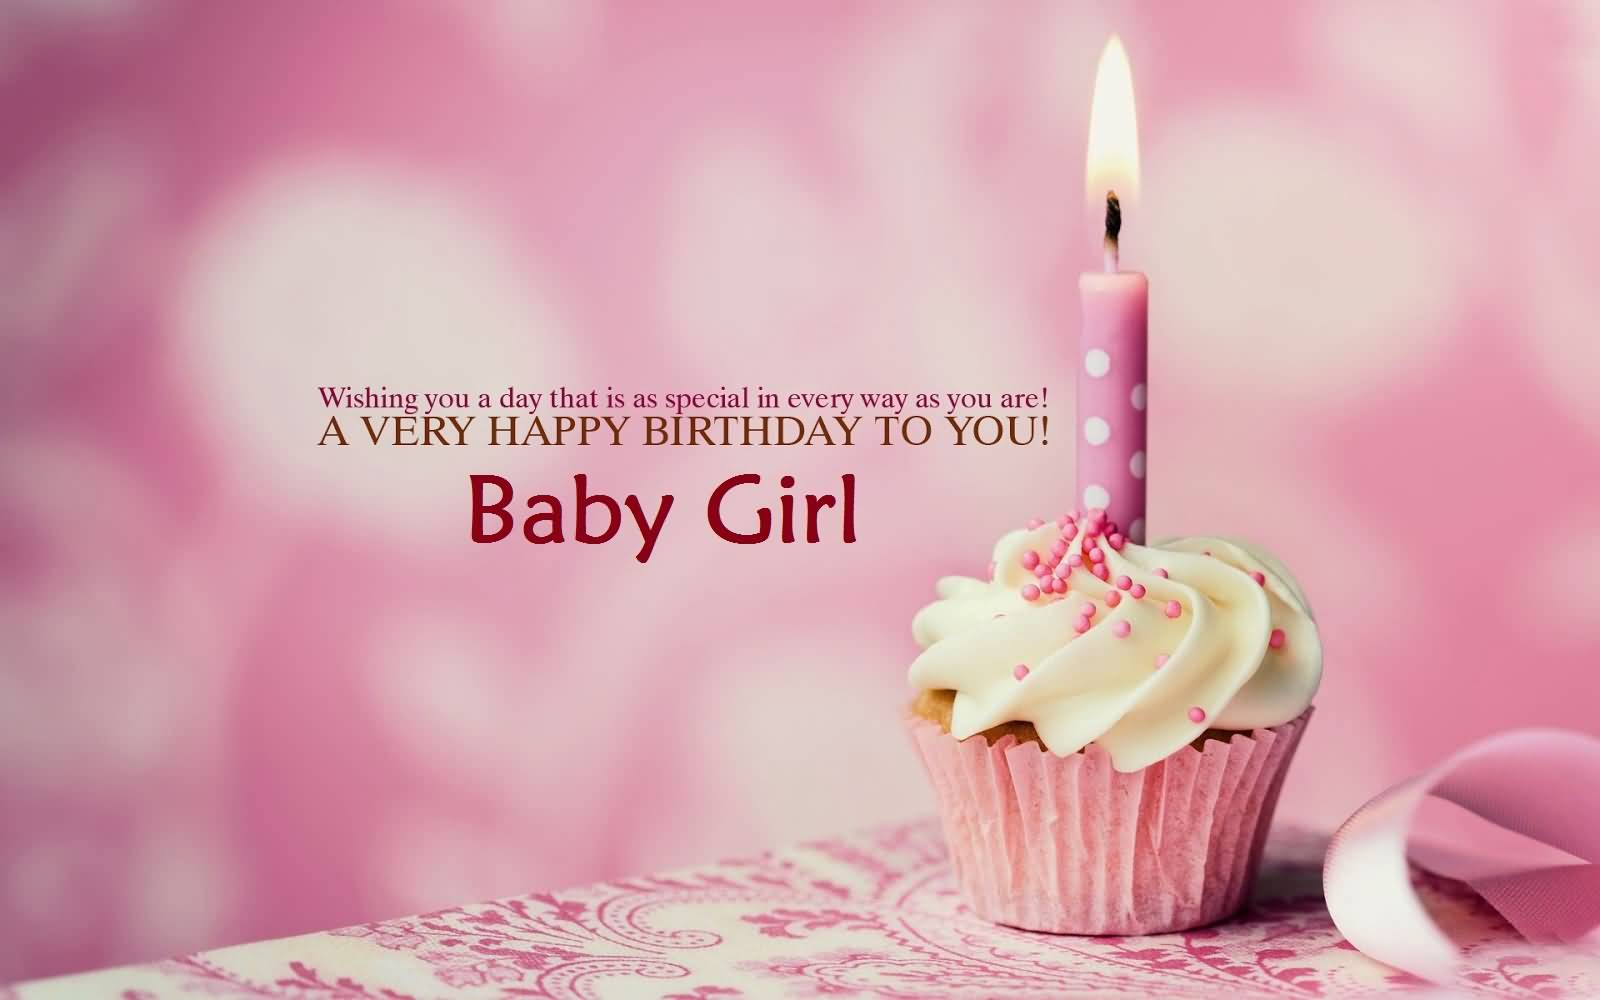 happy birthday message for baby girl ; Many-Many-Happy-Returns-Of-The-Day-Baby-Girl